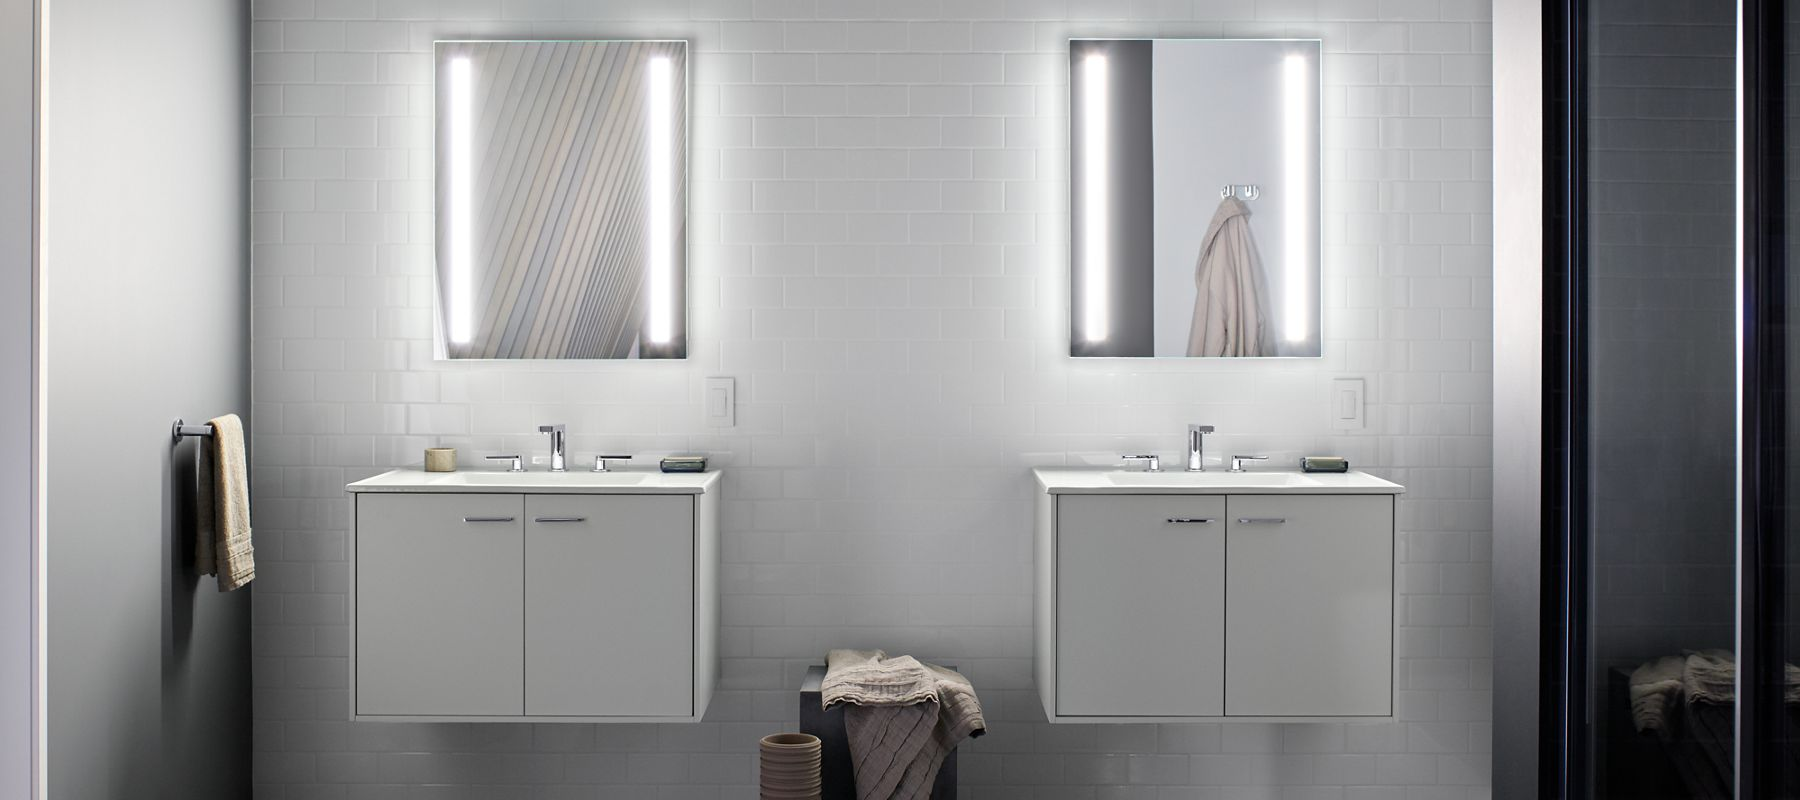 Bathroom mirrors bathroom kohler verdera lighted mirrors medicine cabinets aloadofball Choice Image